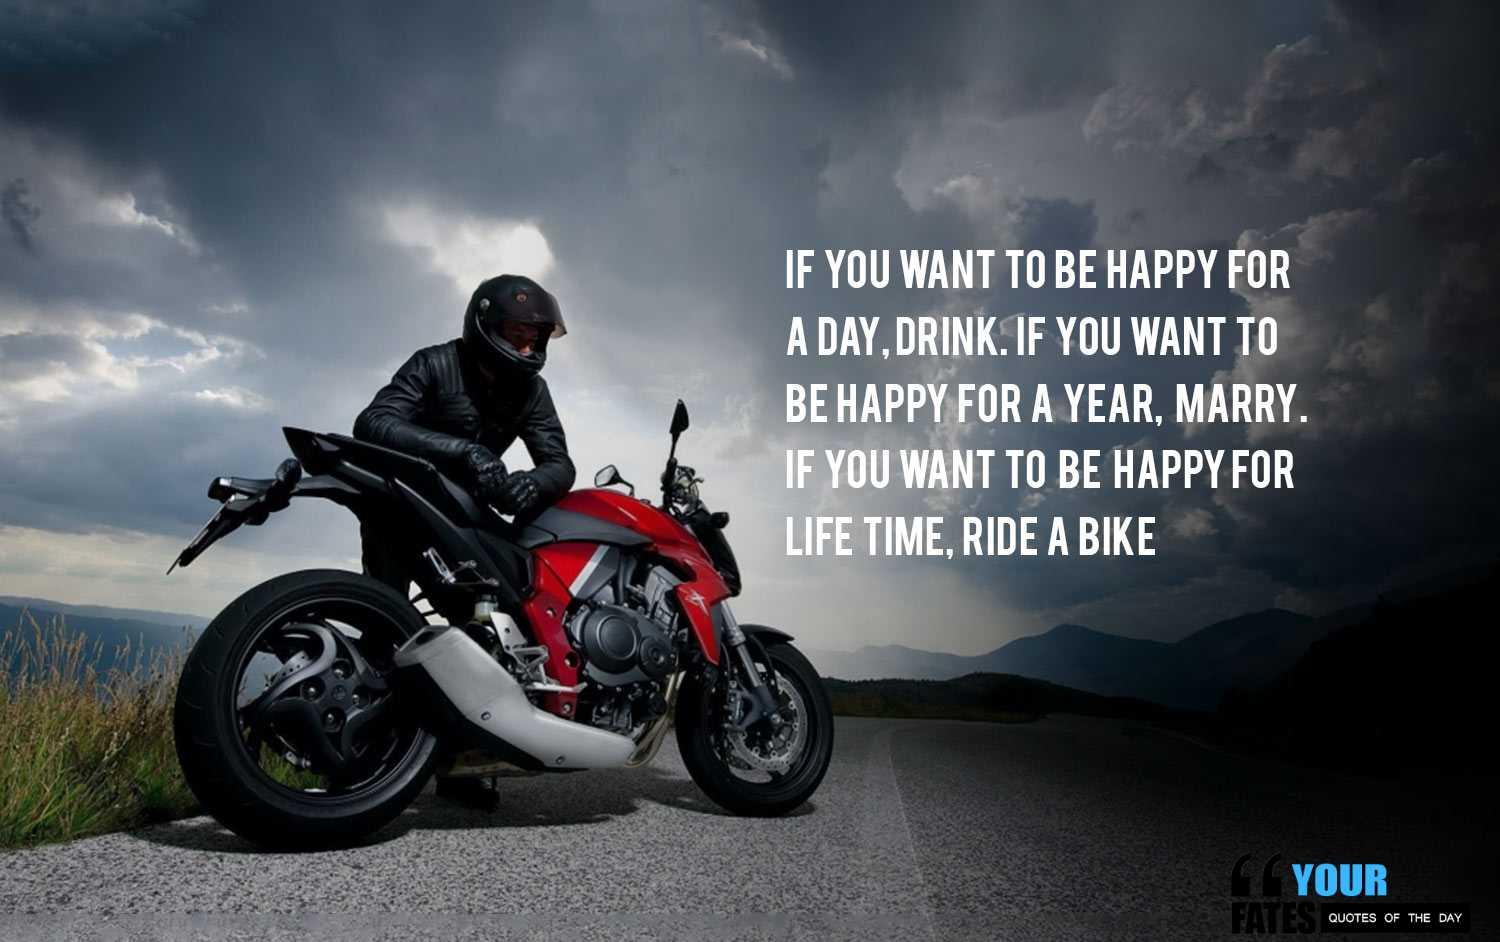 Woman Riding Motorcycle Quotes thumbnail